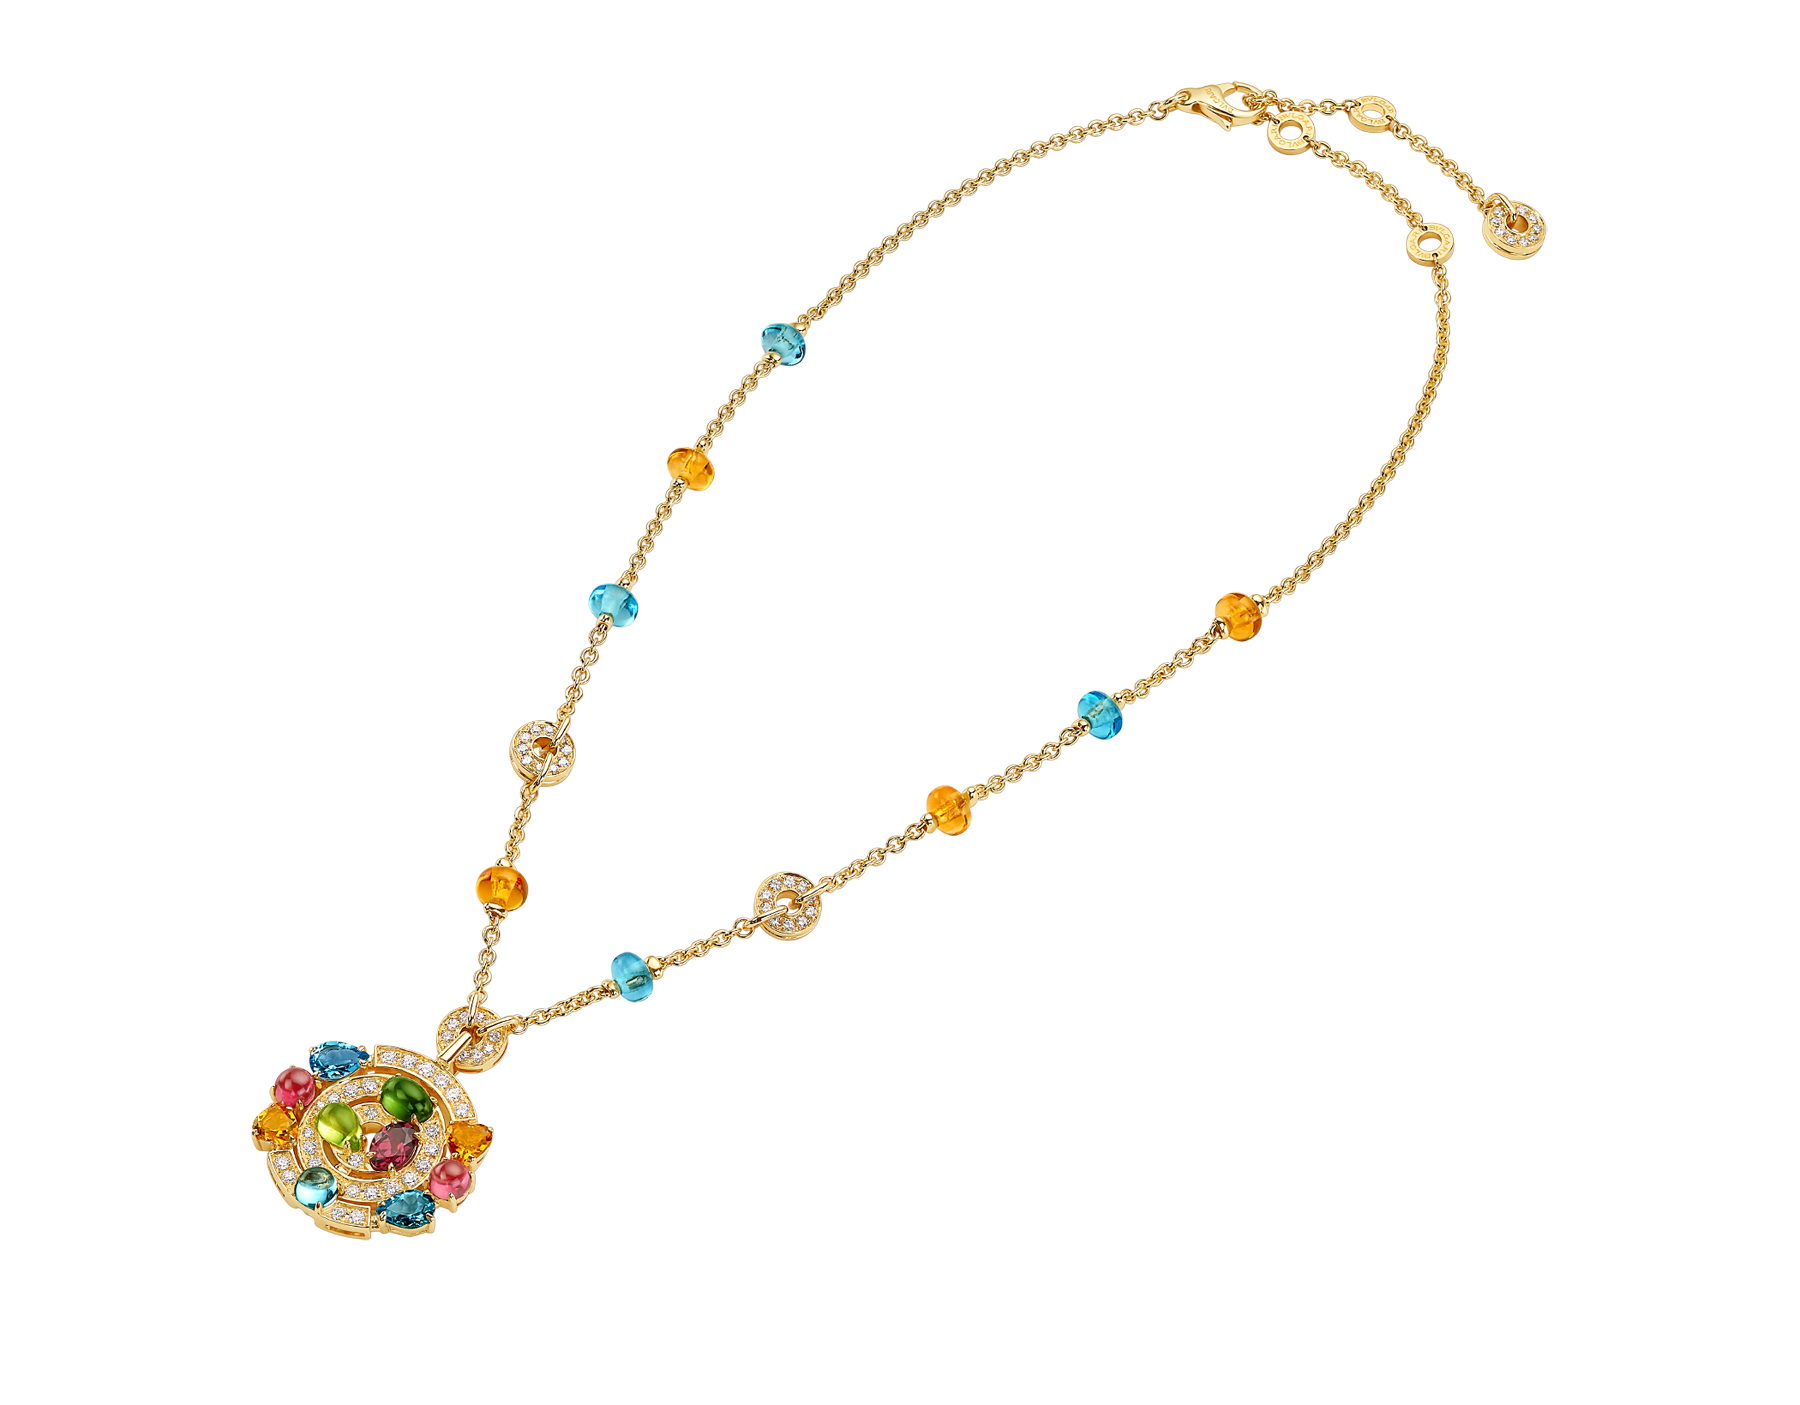 Cerchi 18 kt yellow gold large pendant necklace set with blue topazes, amethysts, green tourmalines, peridots, citrine quartz, rhodolite garnets and pavé diamonds 338229 image 2